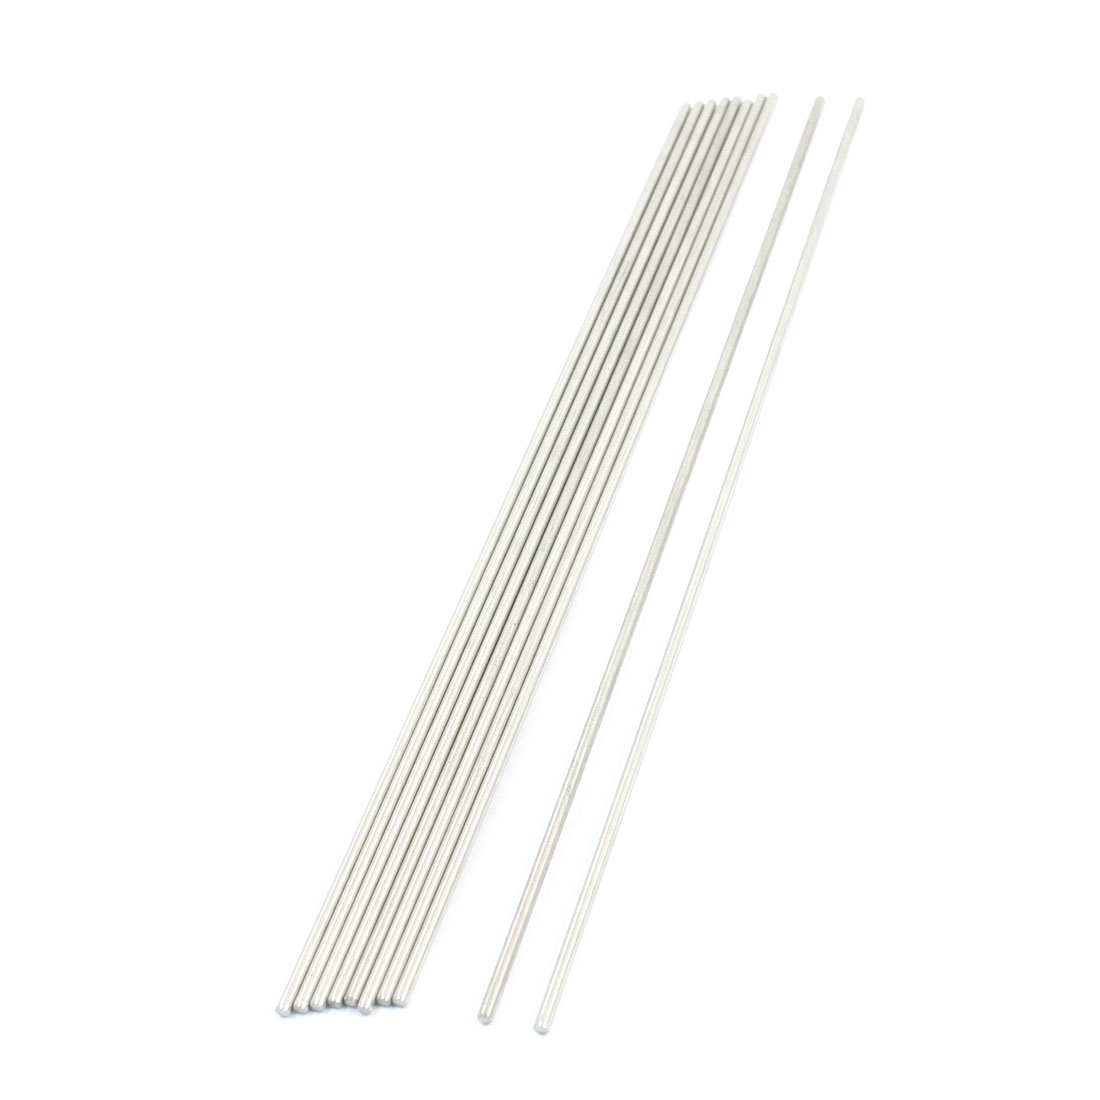 10pcs RC Aircraft Toys Spare Parts Stainless Steel Round Bar 190x2mm